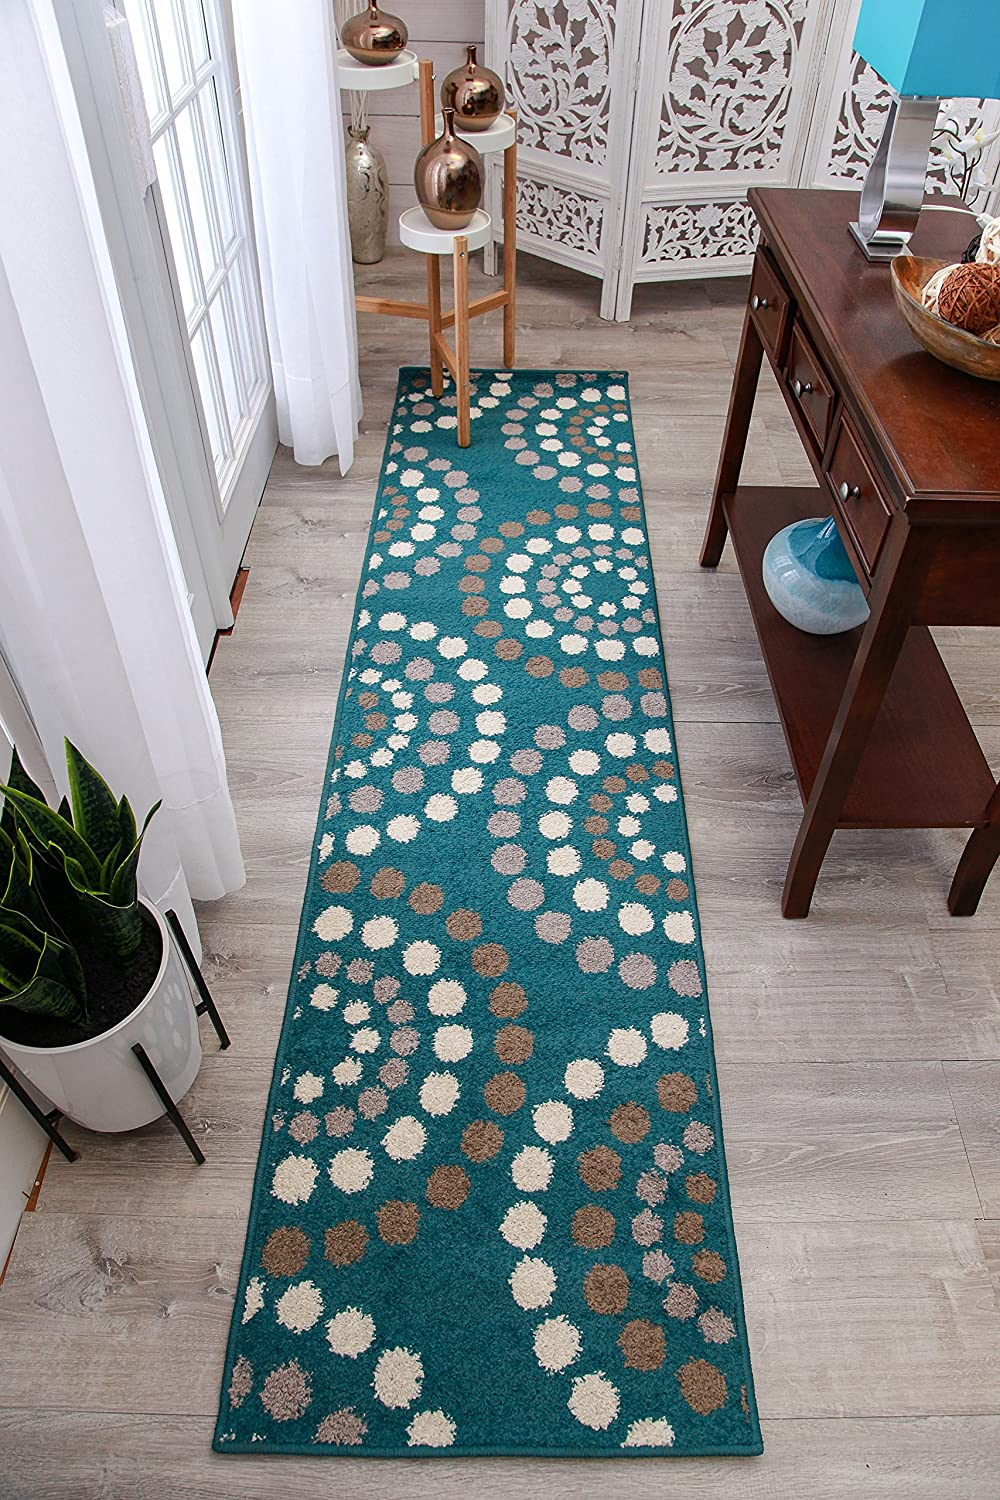 Amazon.com: New Fashion Small Rug For Living Room and Kitchen 2 by 3 ...